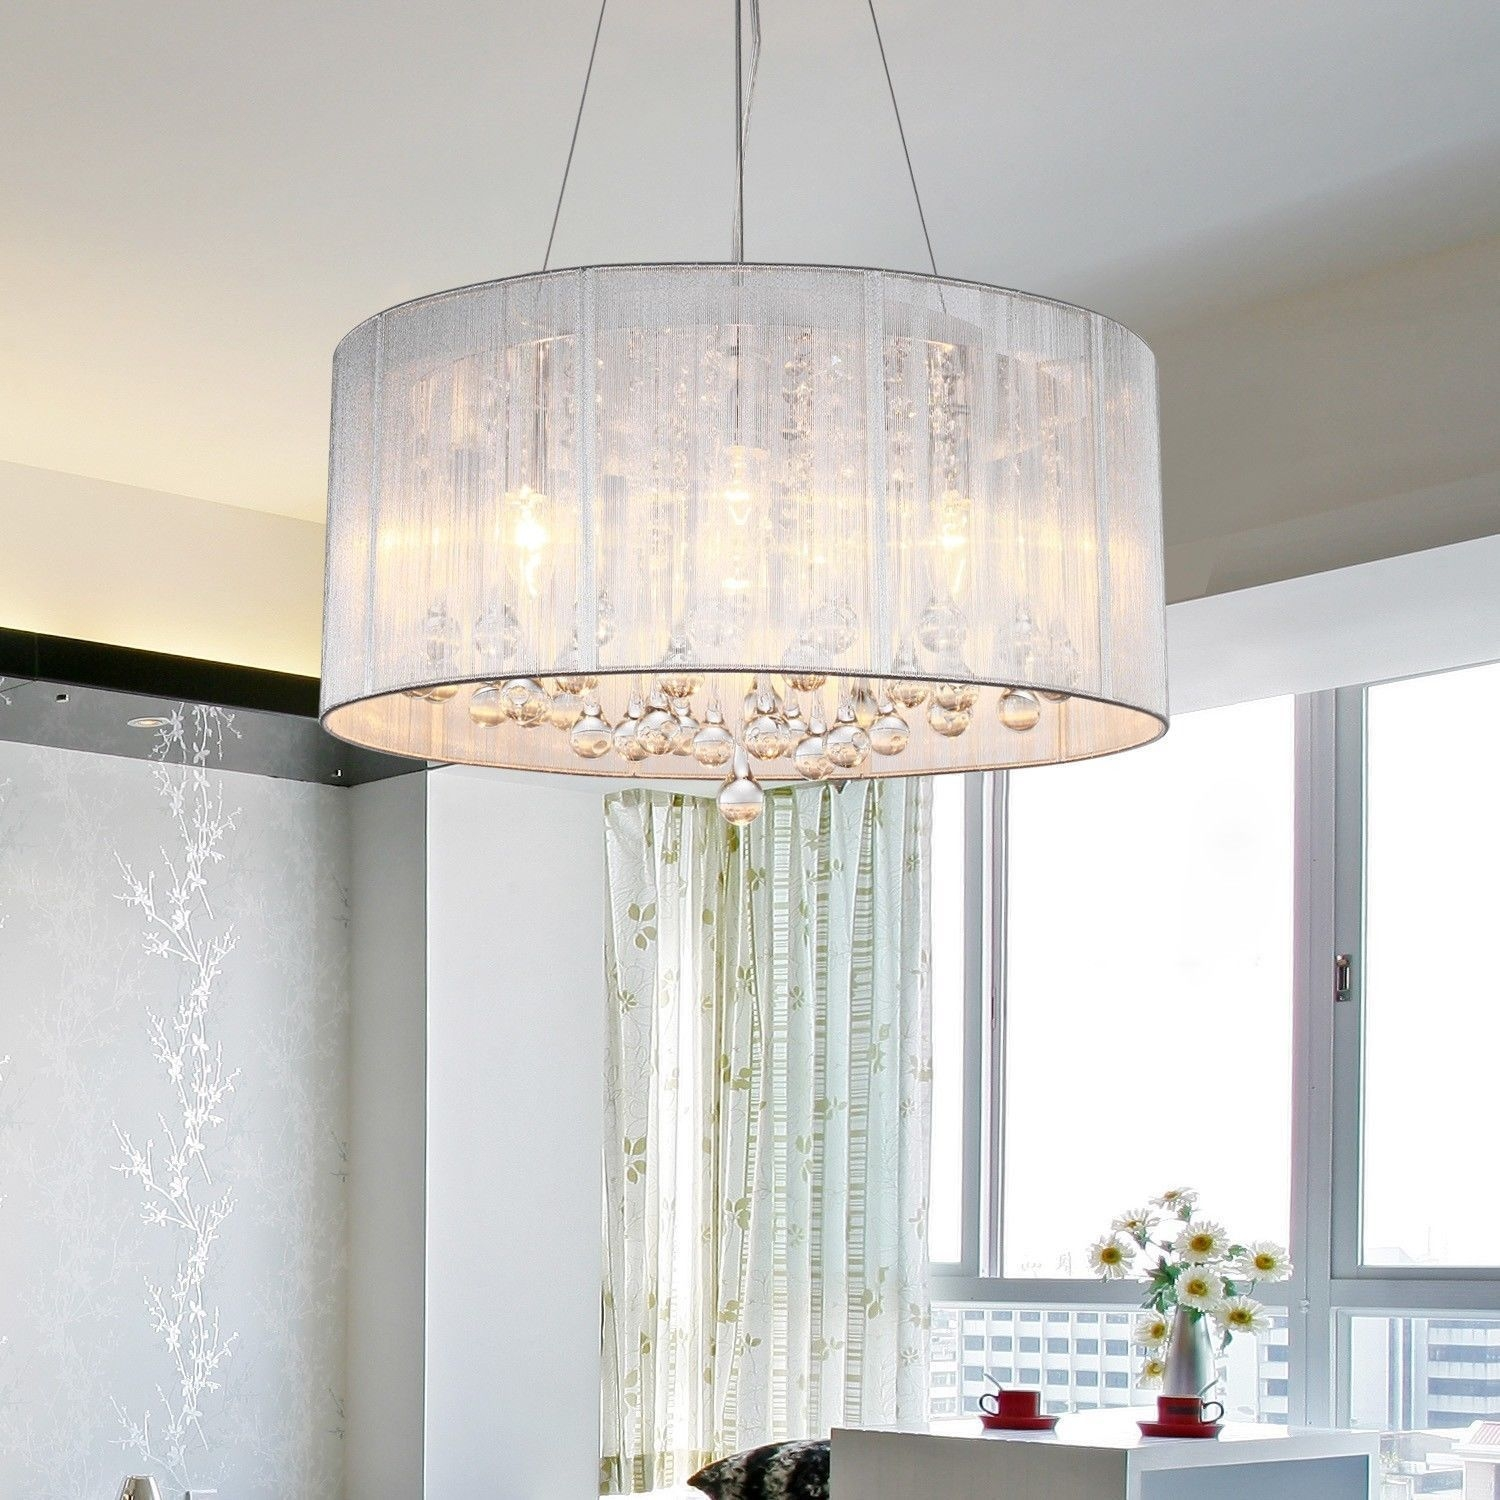 Very Awesome Lamp Shade Chandelier Best Home Decor Inspirations Intended For Crystal Chandeliers With Shades (View 11 of 25)